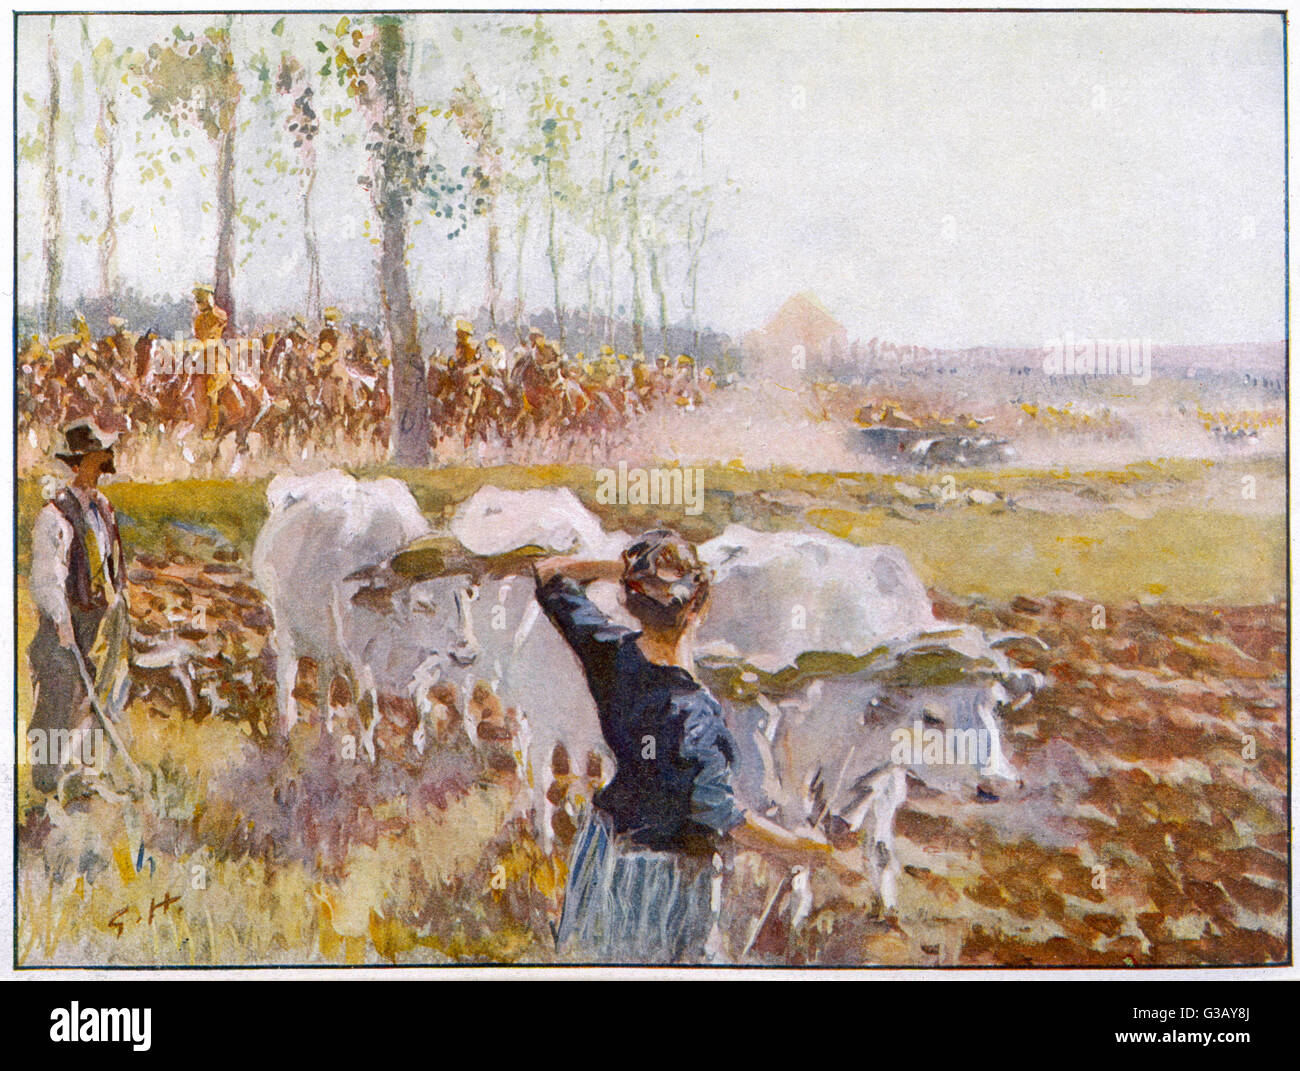 On a fine autumn day, British  cavalry advance towards the  front through the French  countryside, watched by  peasants - Stock Image